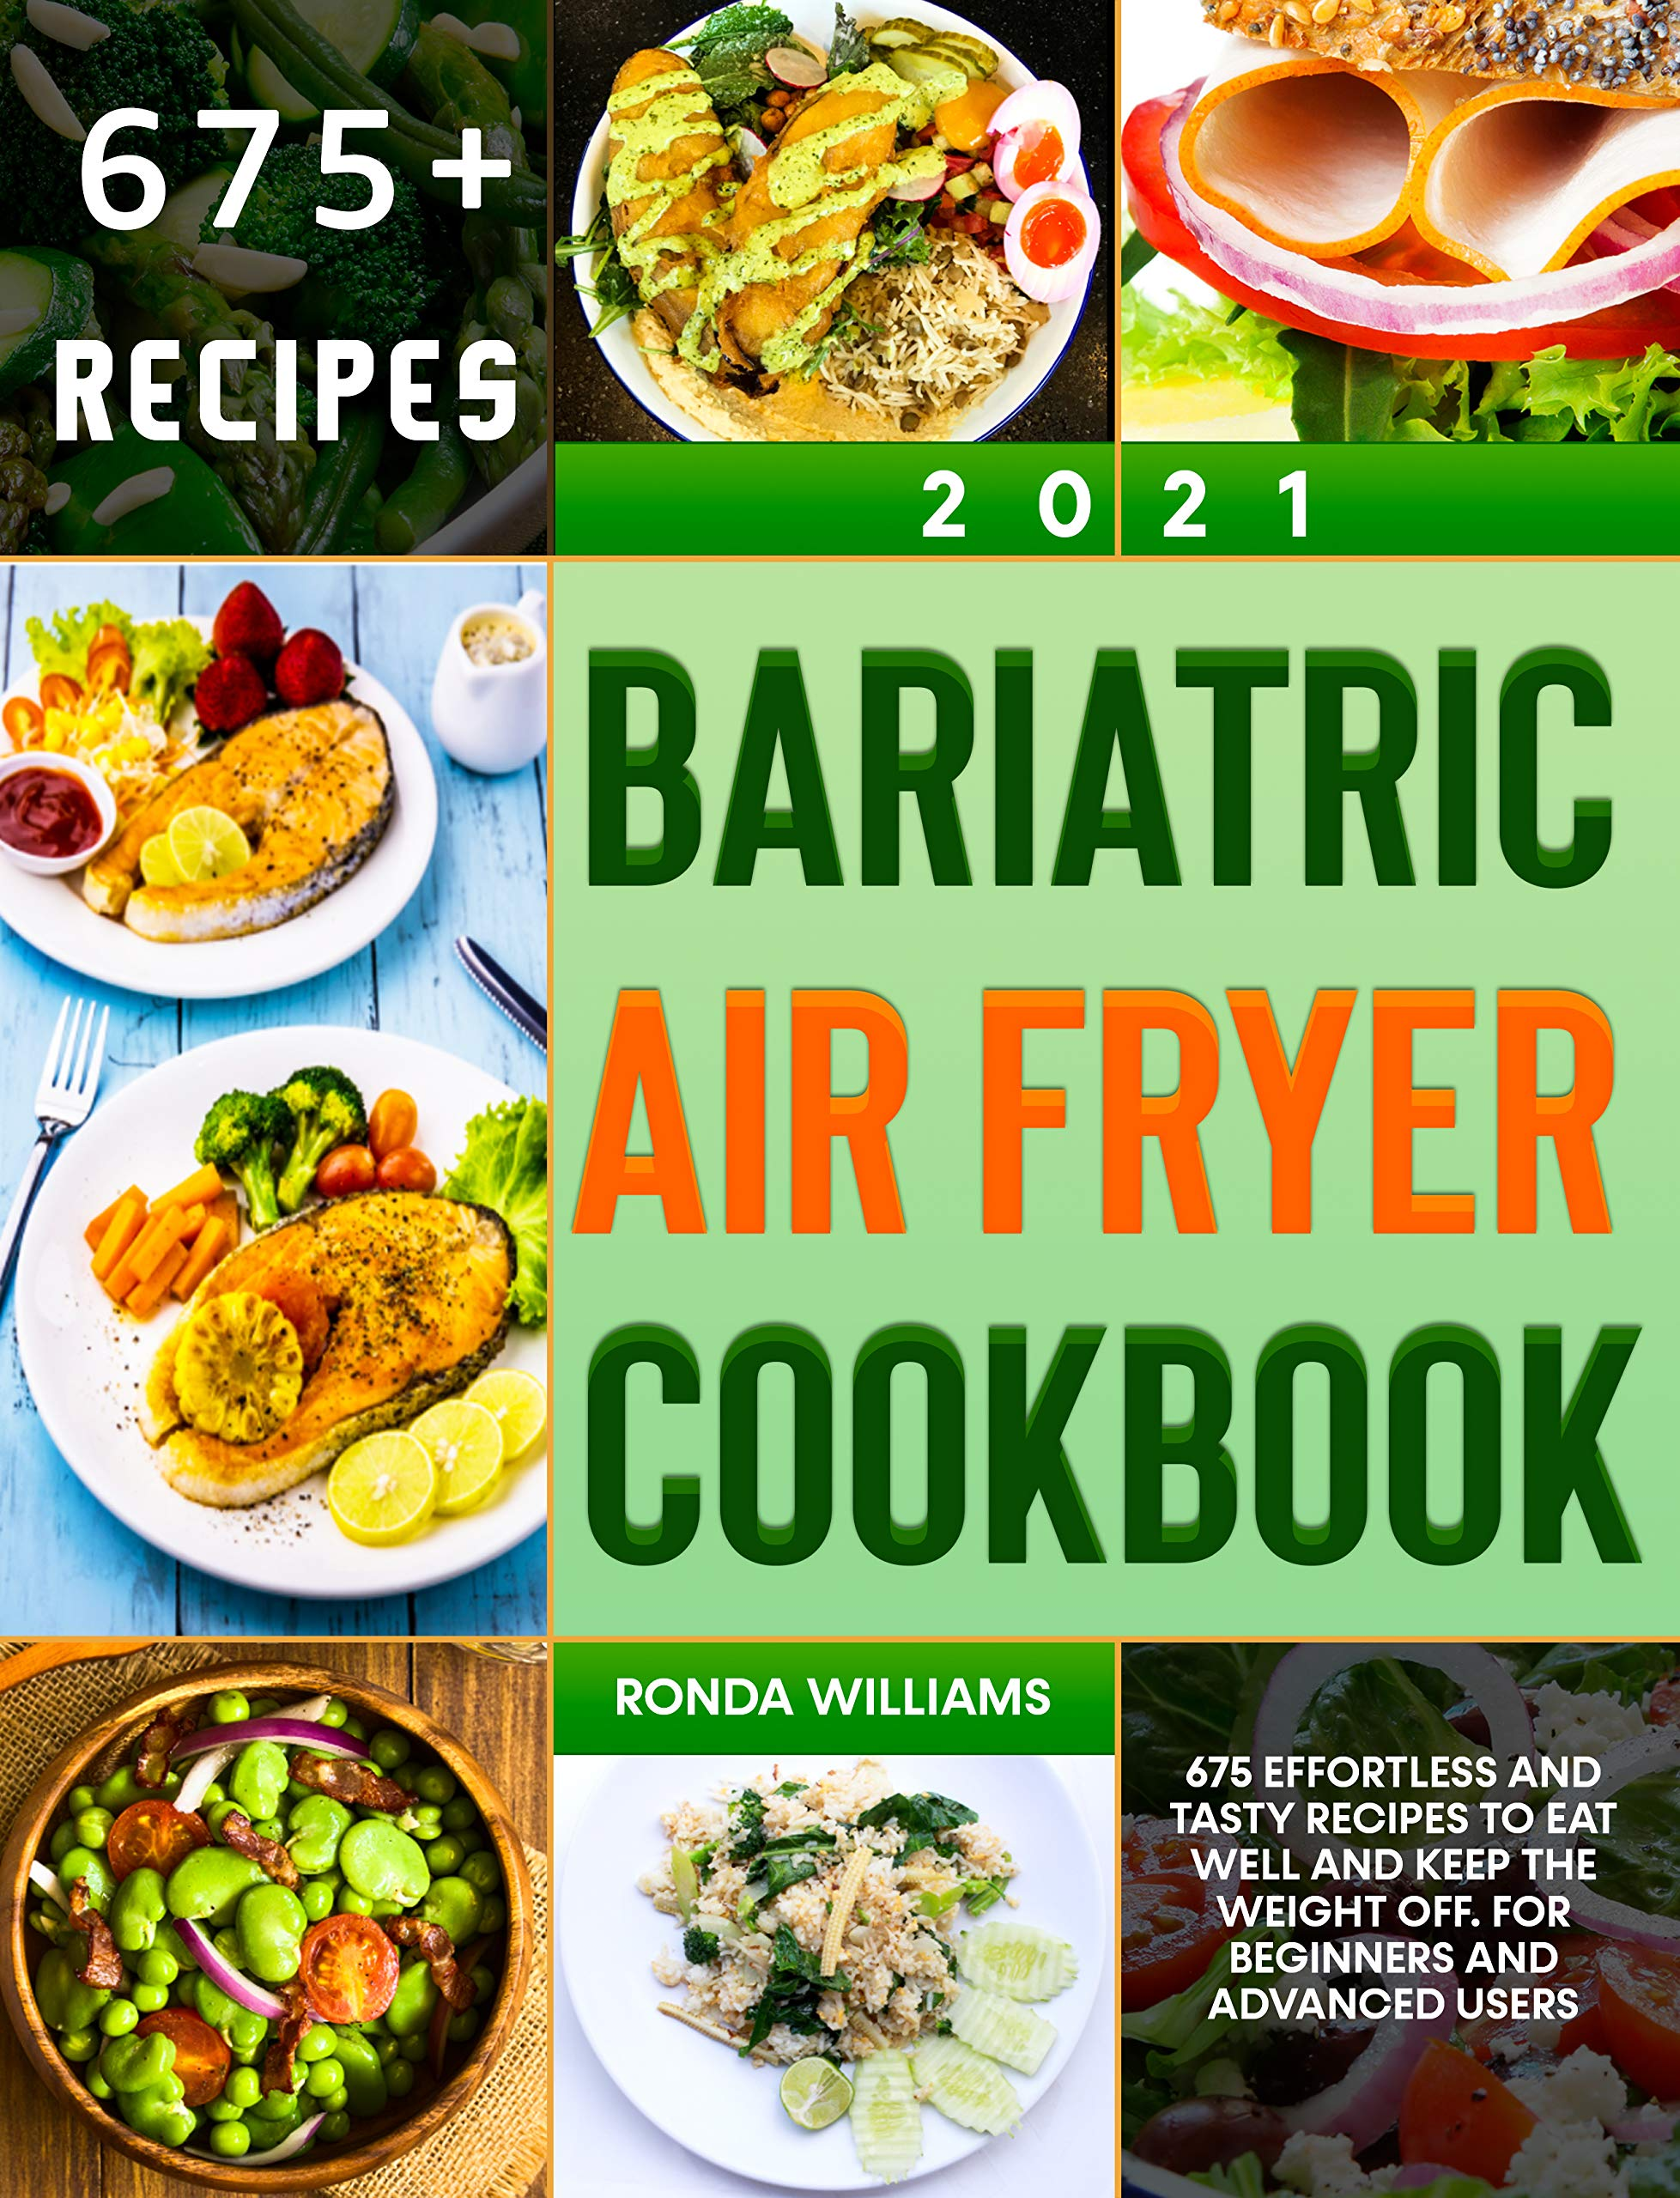 Bariatric Air Fryer Cookbook 2021: 675 Effortless and Tasty Recipes to Eat Well and Keep the Weight Off. For Beginners and Advanced Users